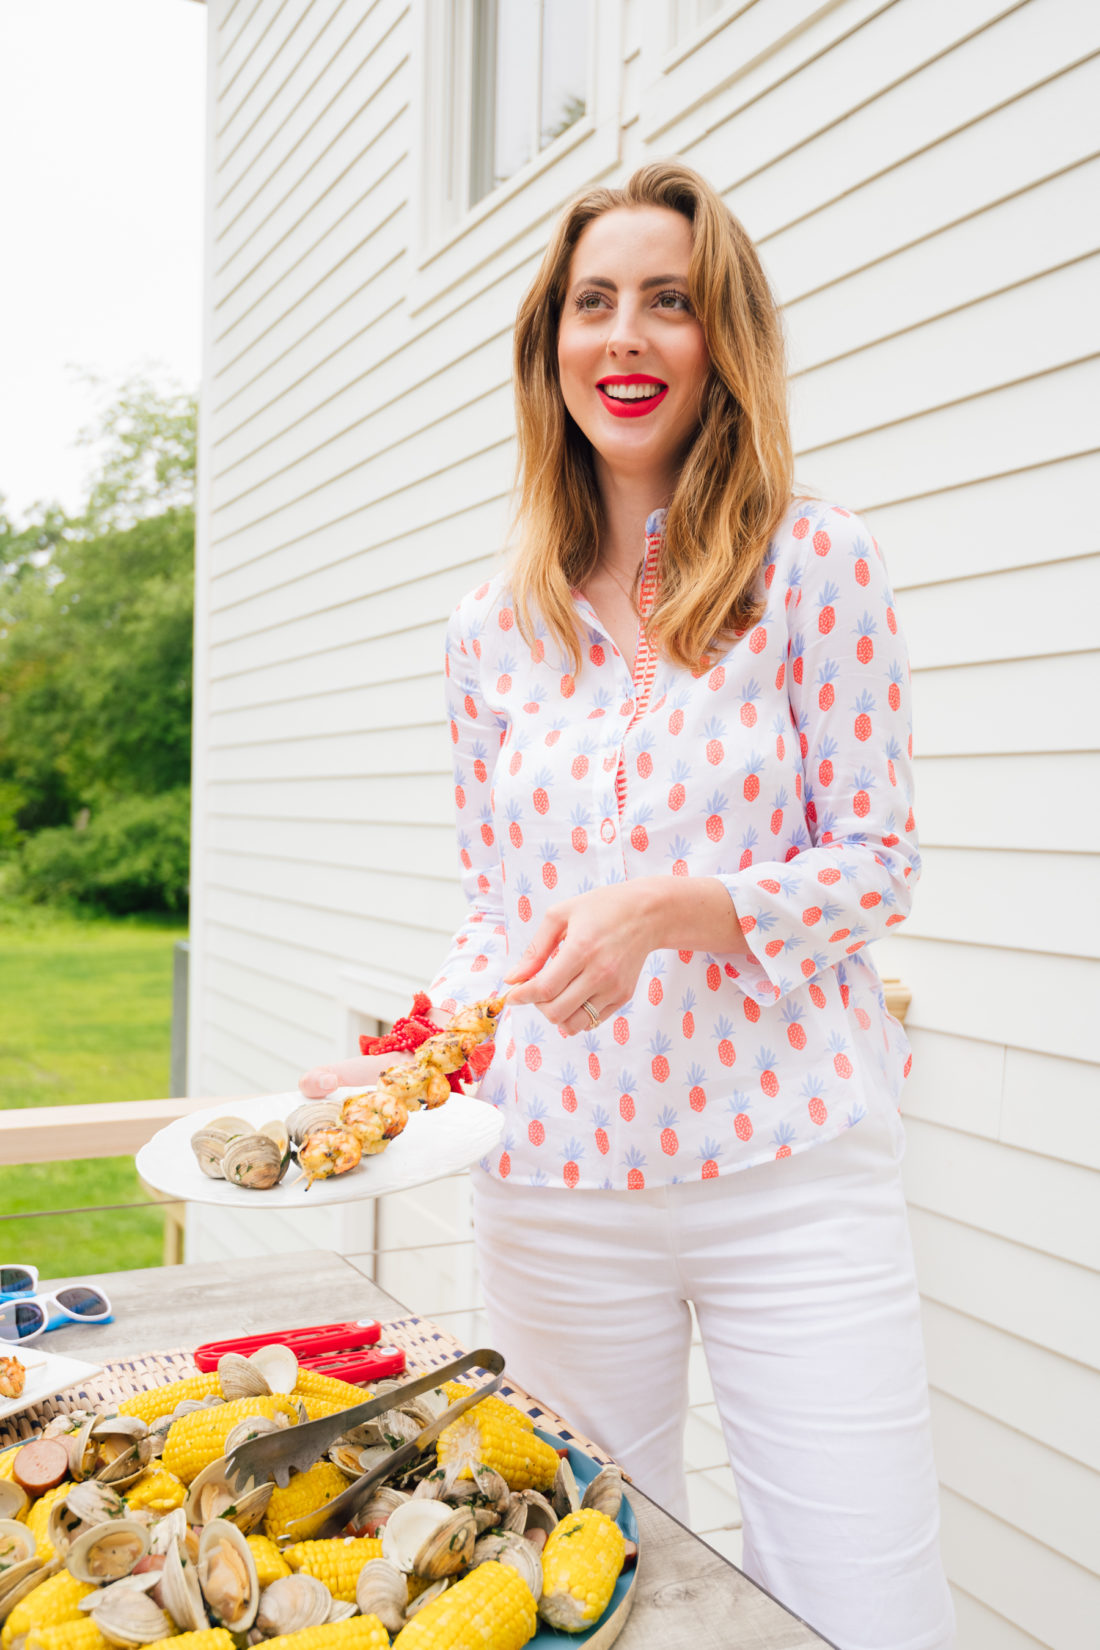 Eva Amurri Martino helps herself to some of the delicious food at her summer clambake